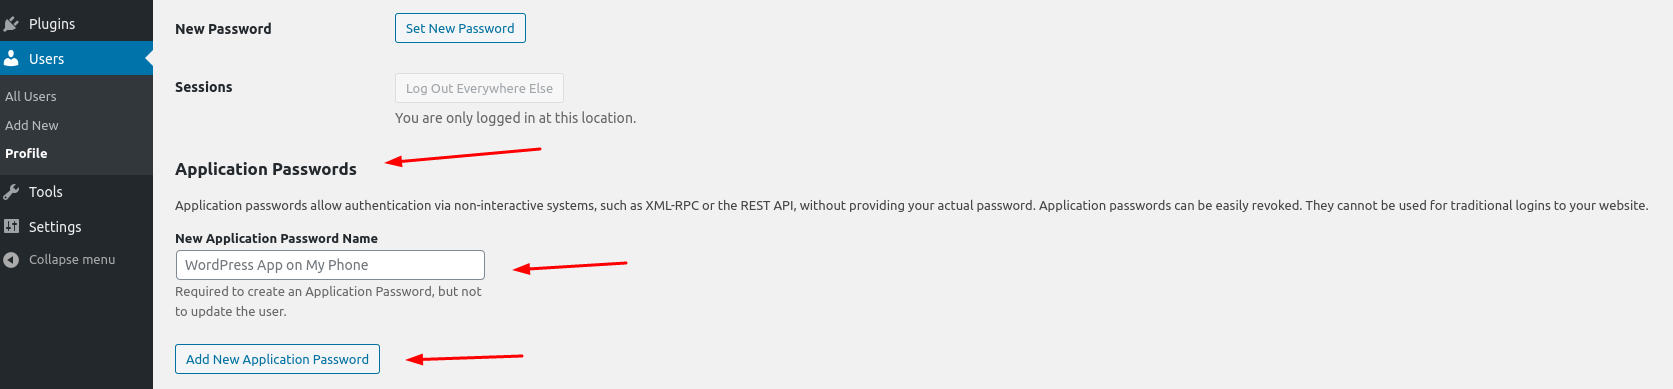 Application Passwords